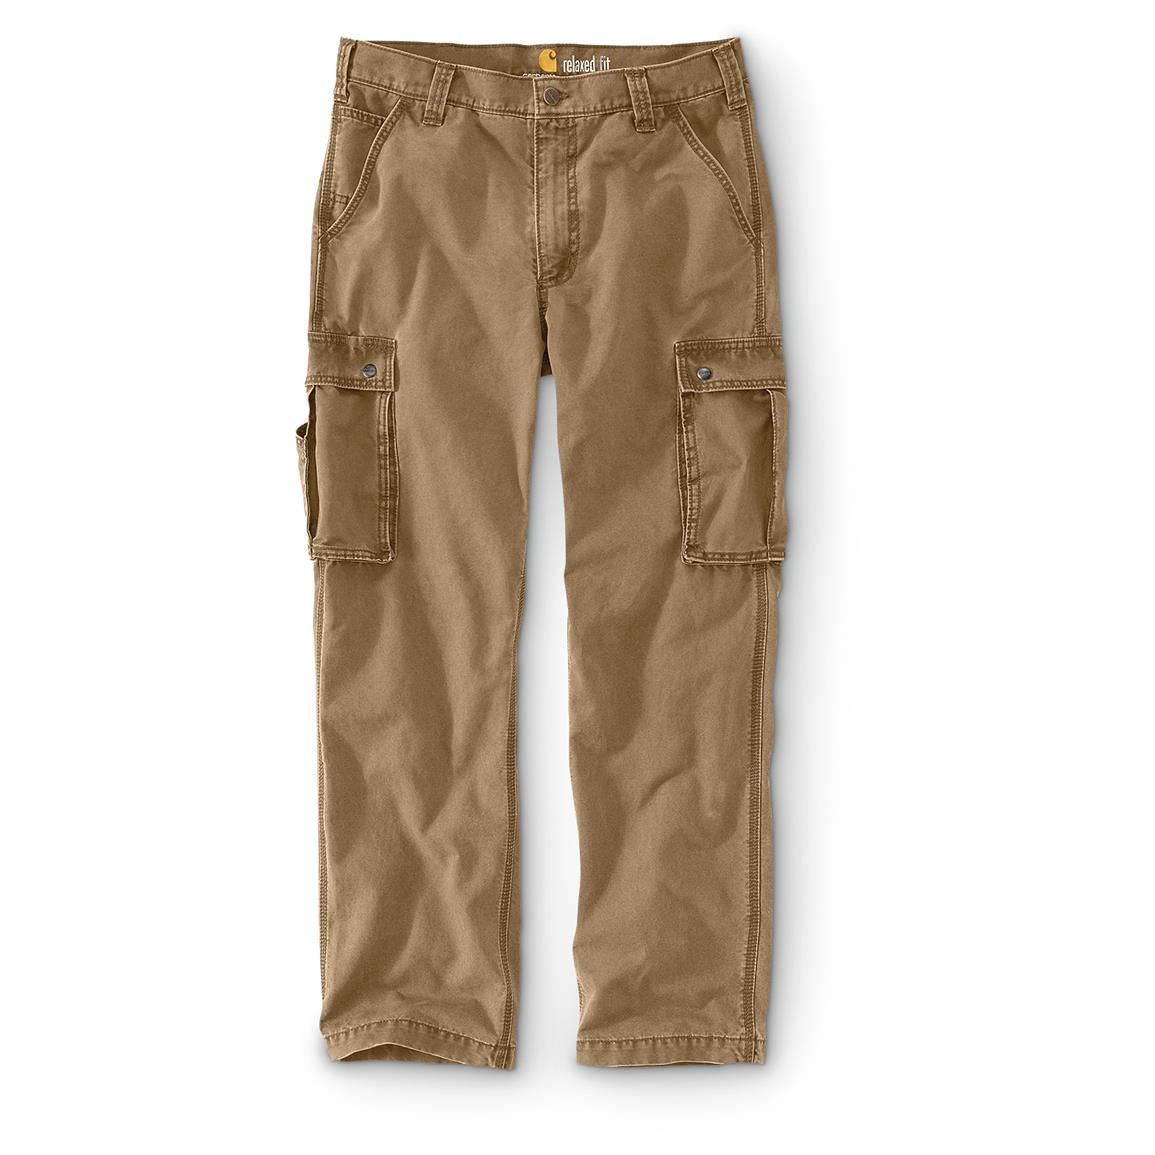 Carhartt Men's Rugged Cargo Pants, Dark Khaki